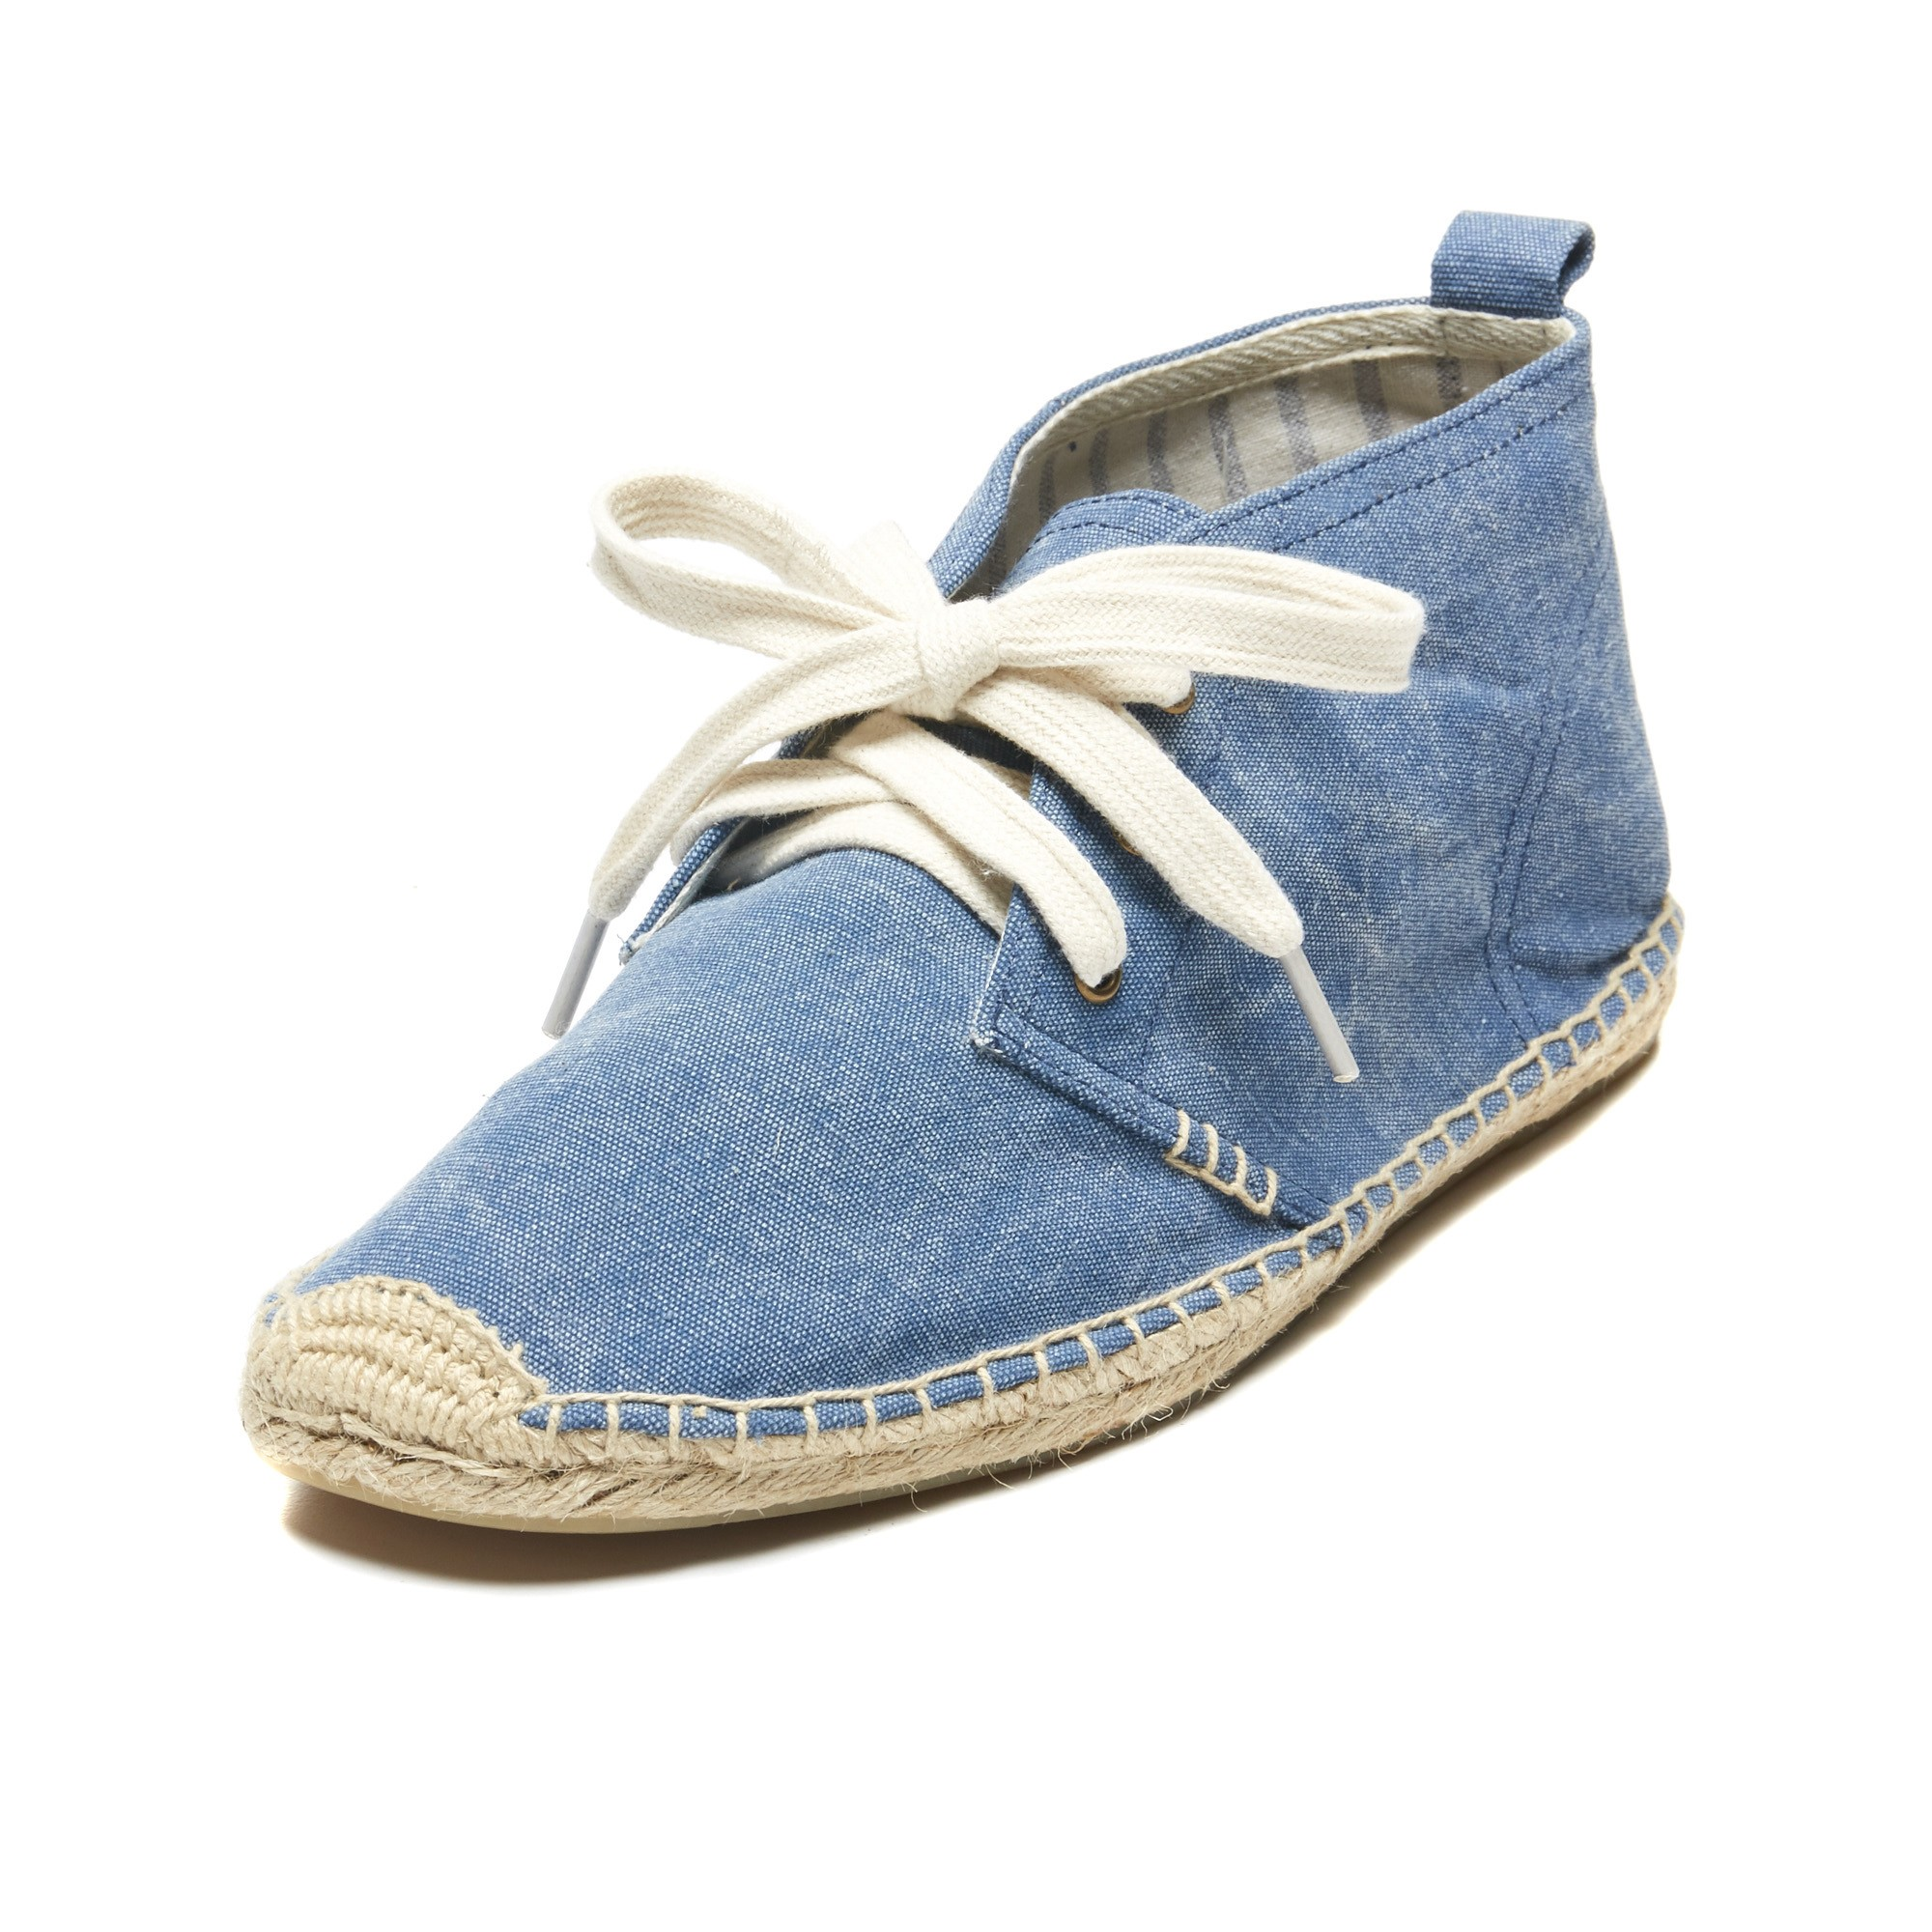 Desert Boot in Washed Marine Blue - $89 Soludos